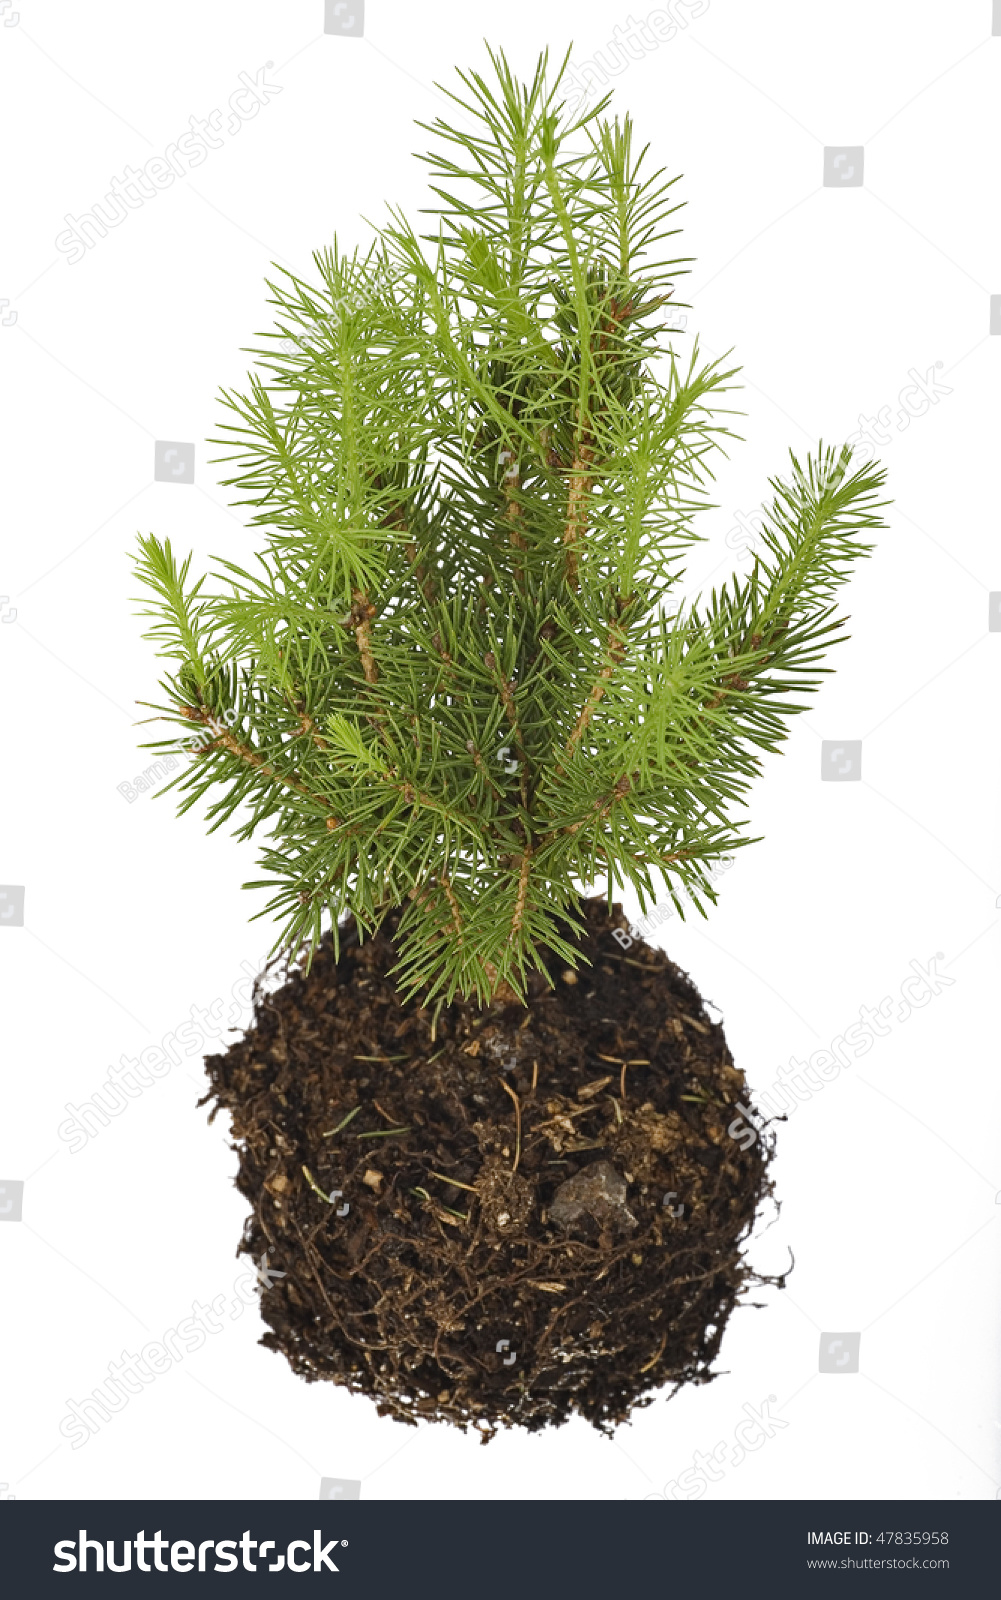 Pine tree seedling isolated on white background stock for Tree sapling